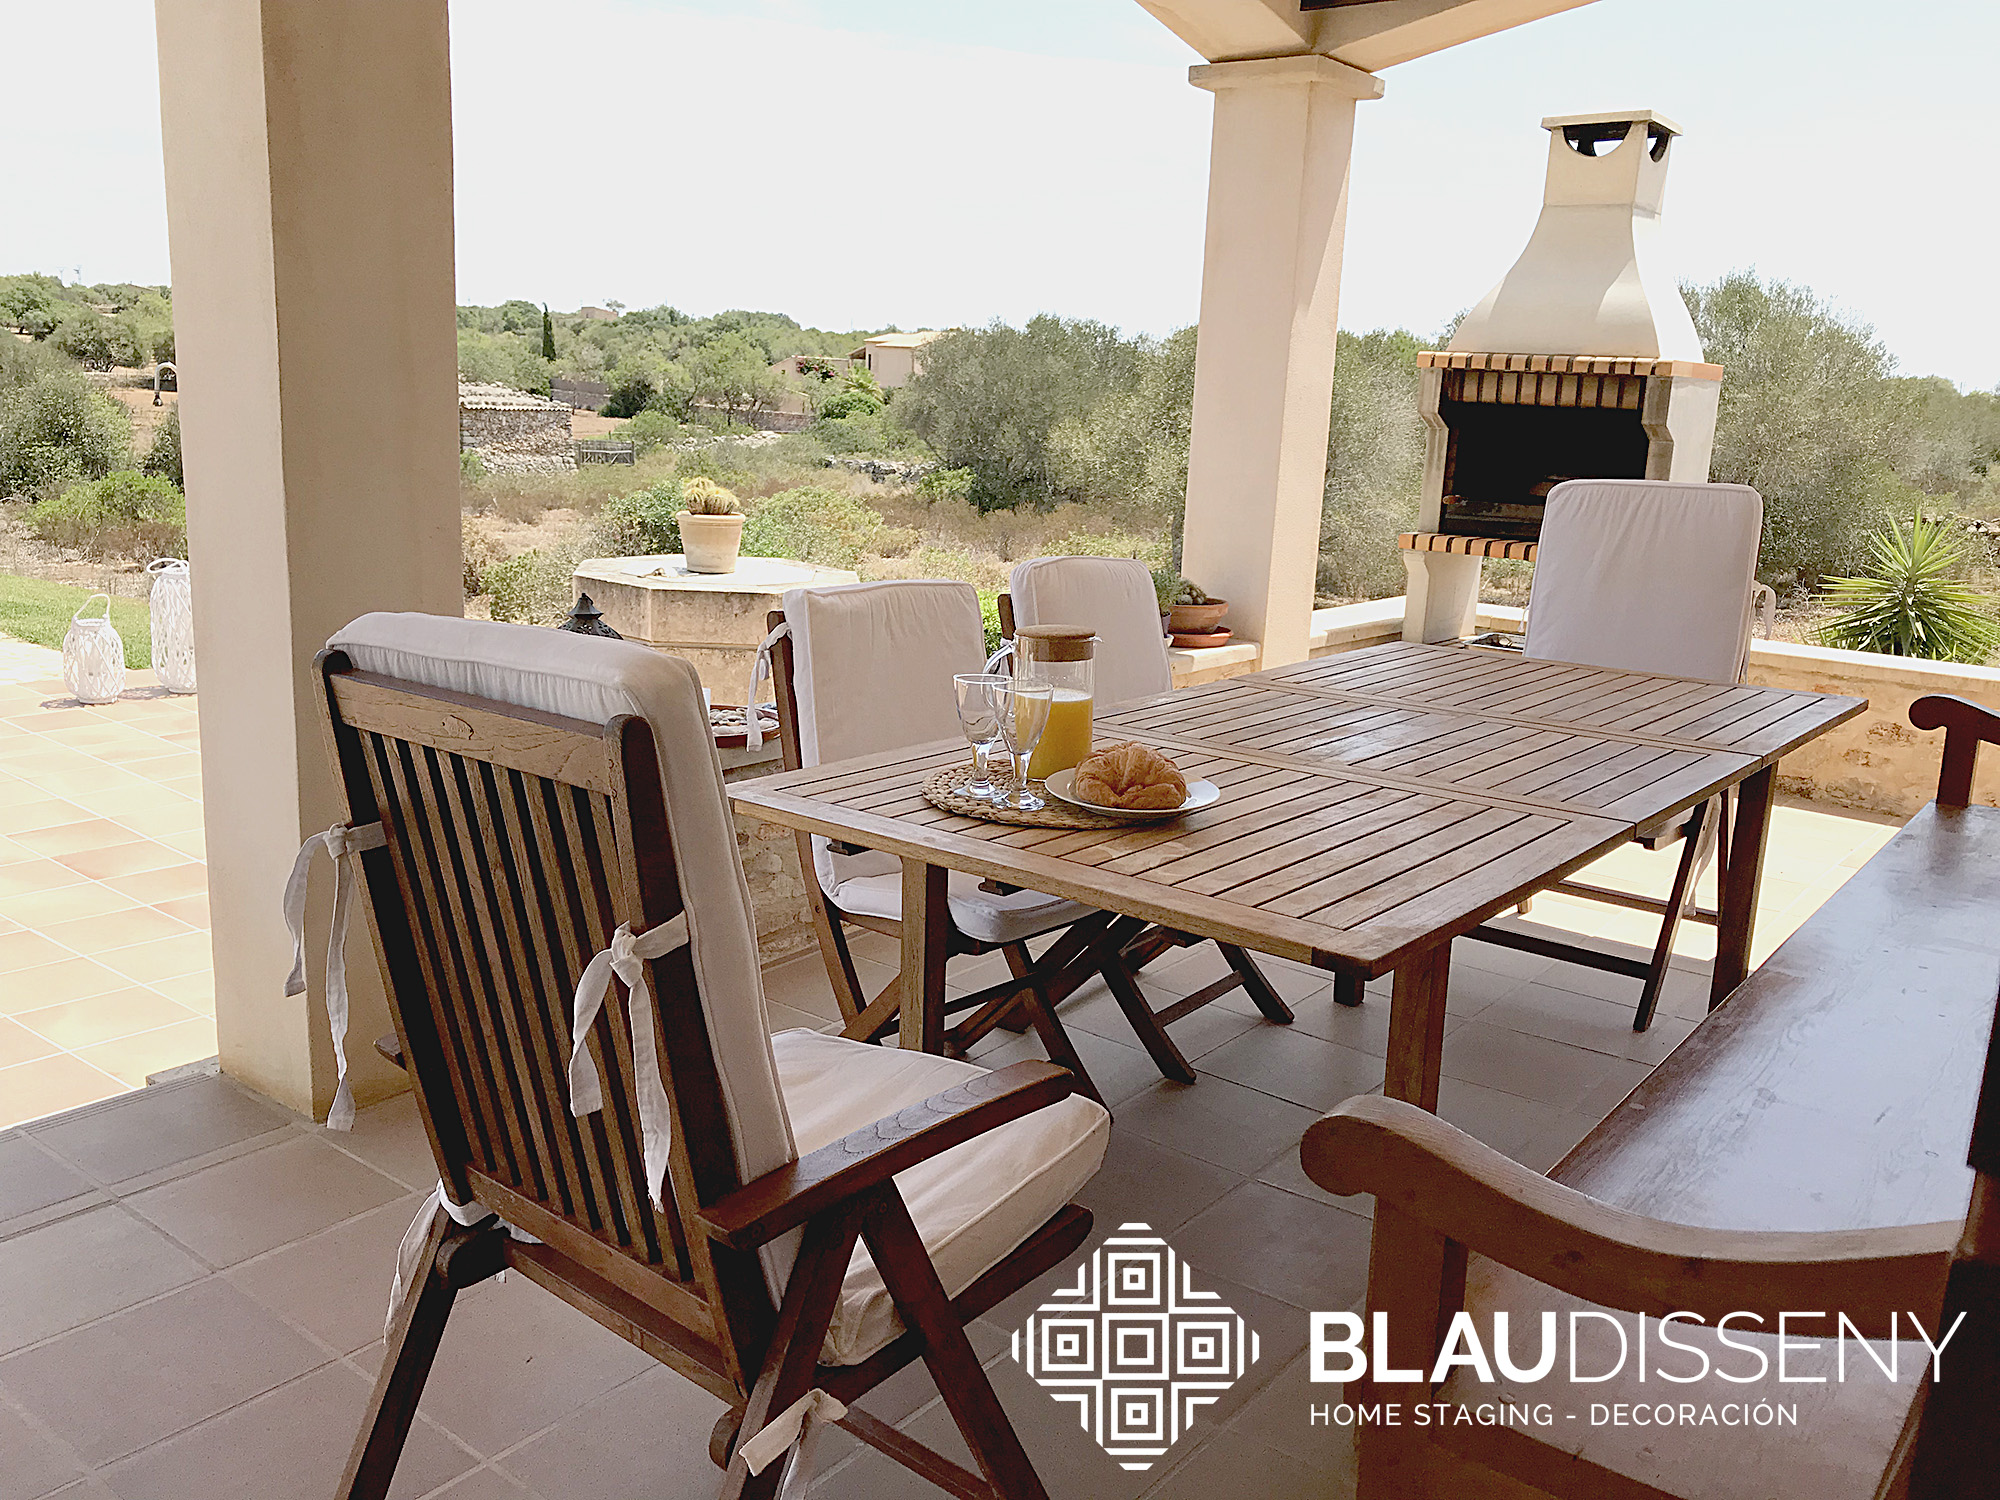 Blaudisseny-home-staging-ses-salines-terraza-1-despues-logo